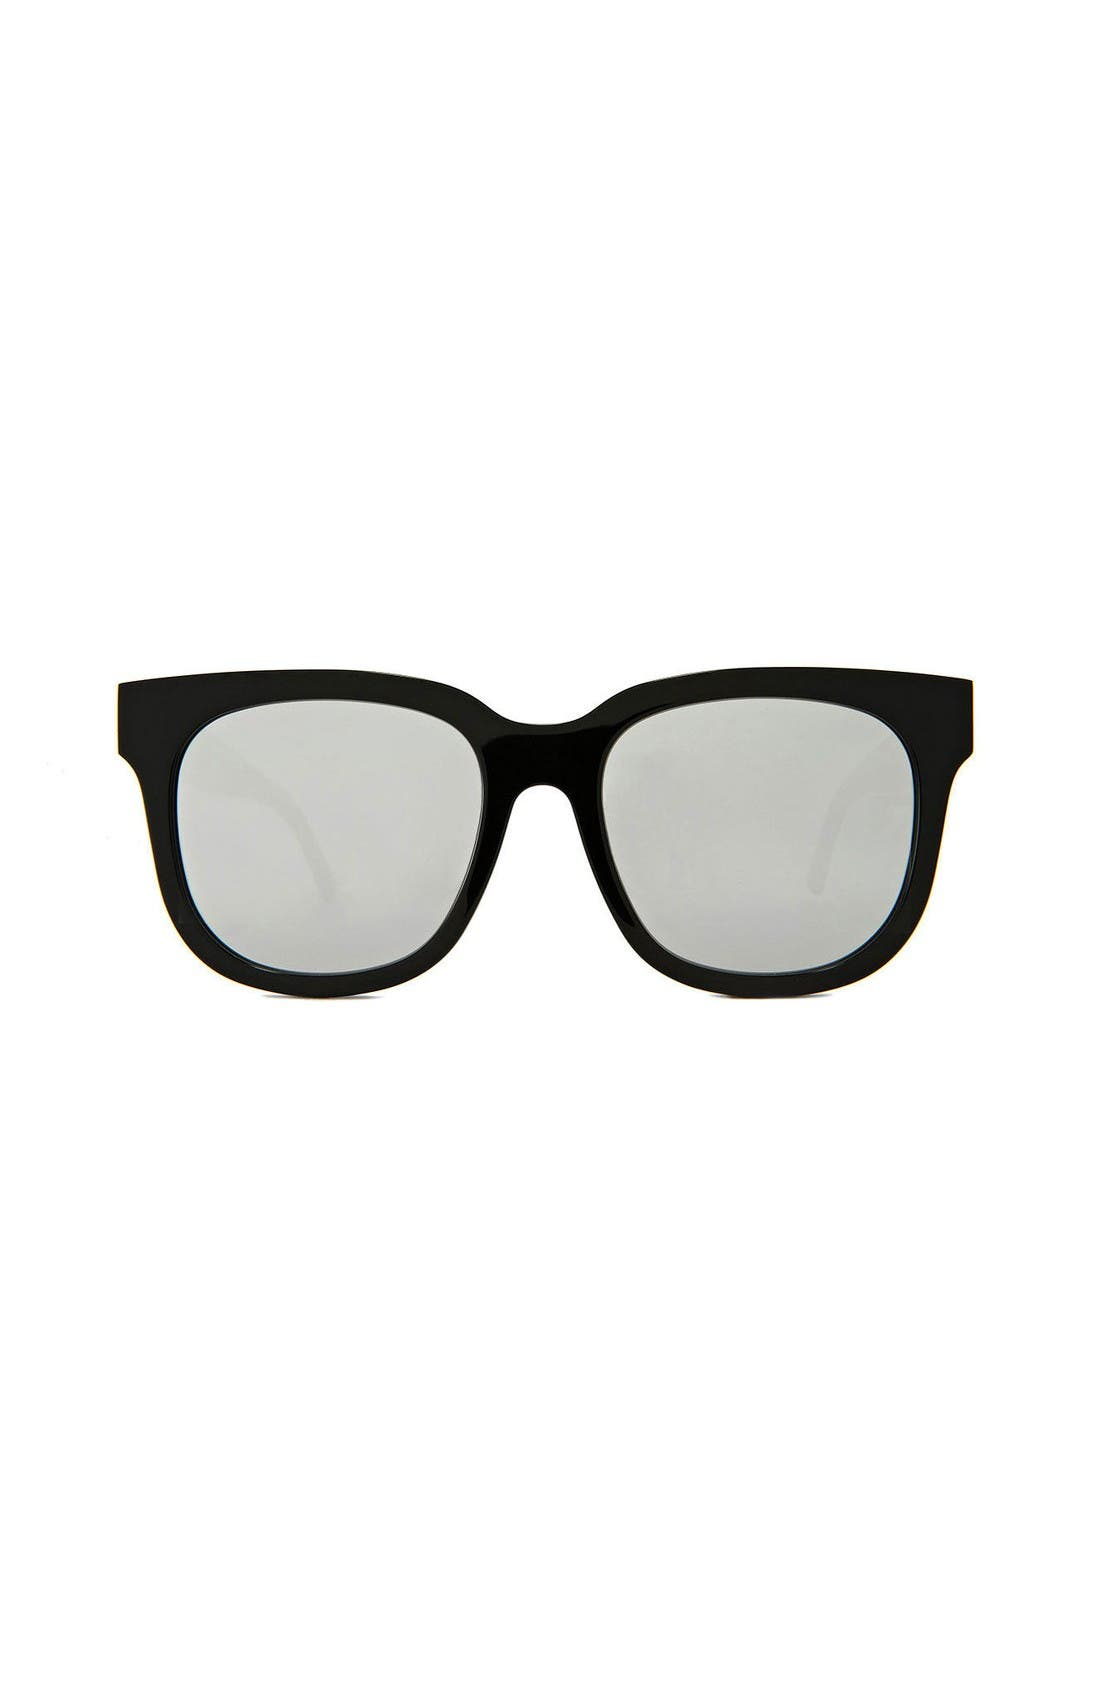 Main Image - Gentle Monster Didi D 56mm Square Sunglasses